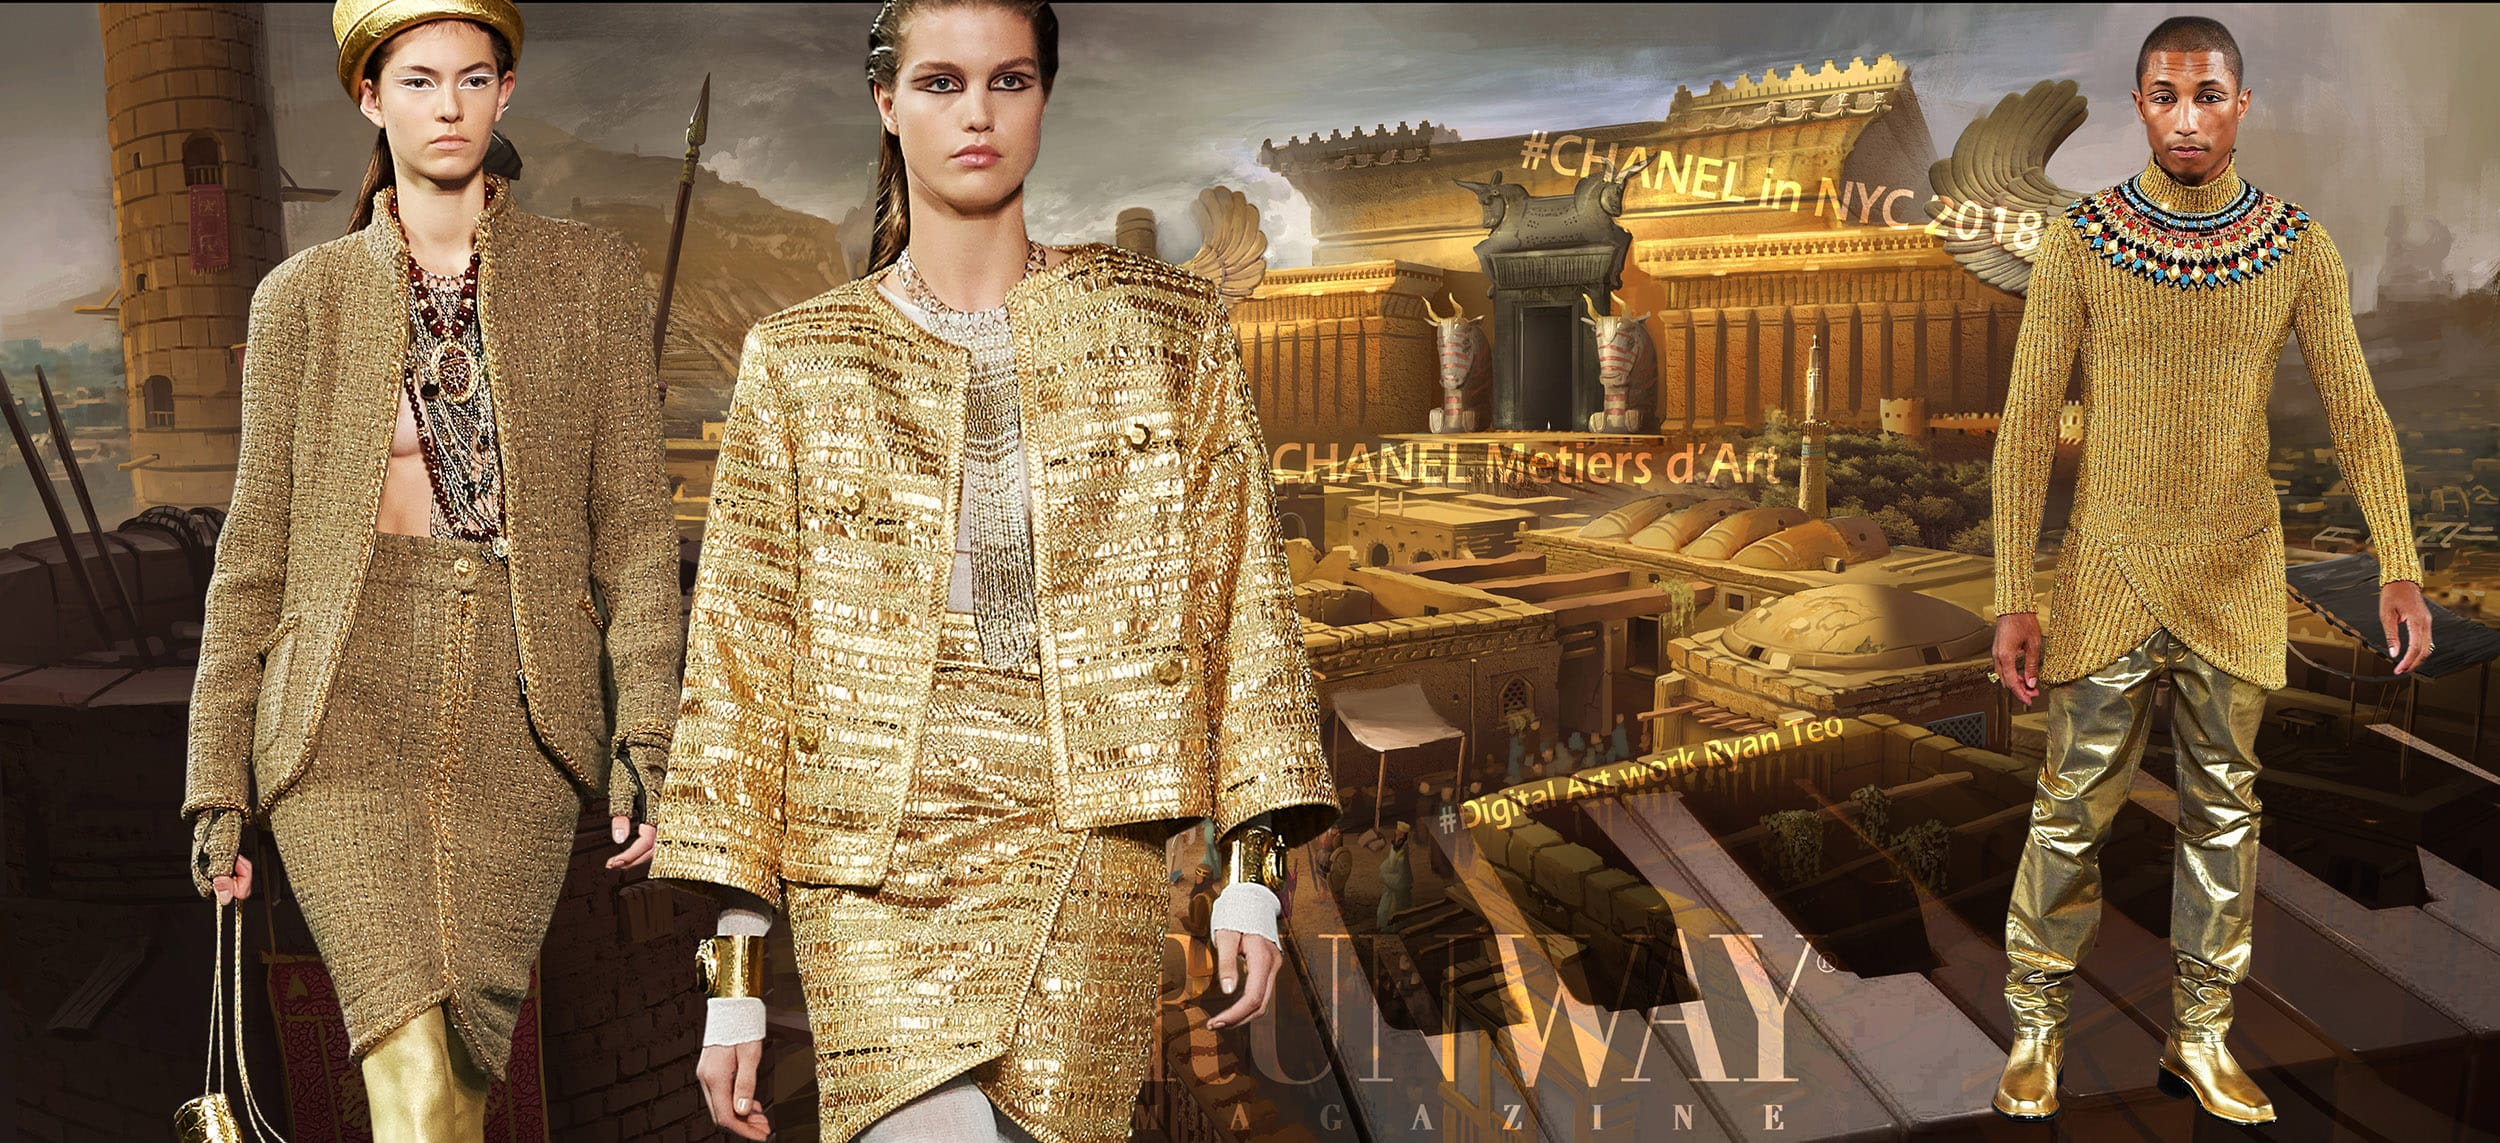 Chanel Metier d'art New York 2018 by Runway Magazine